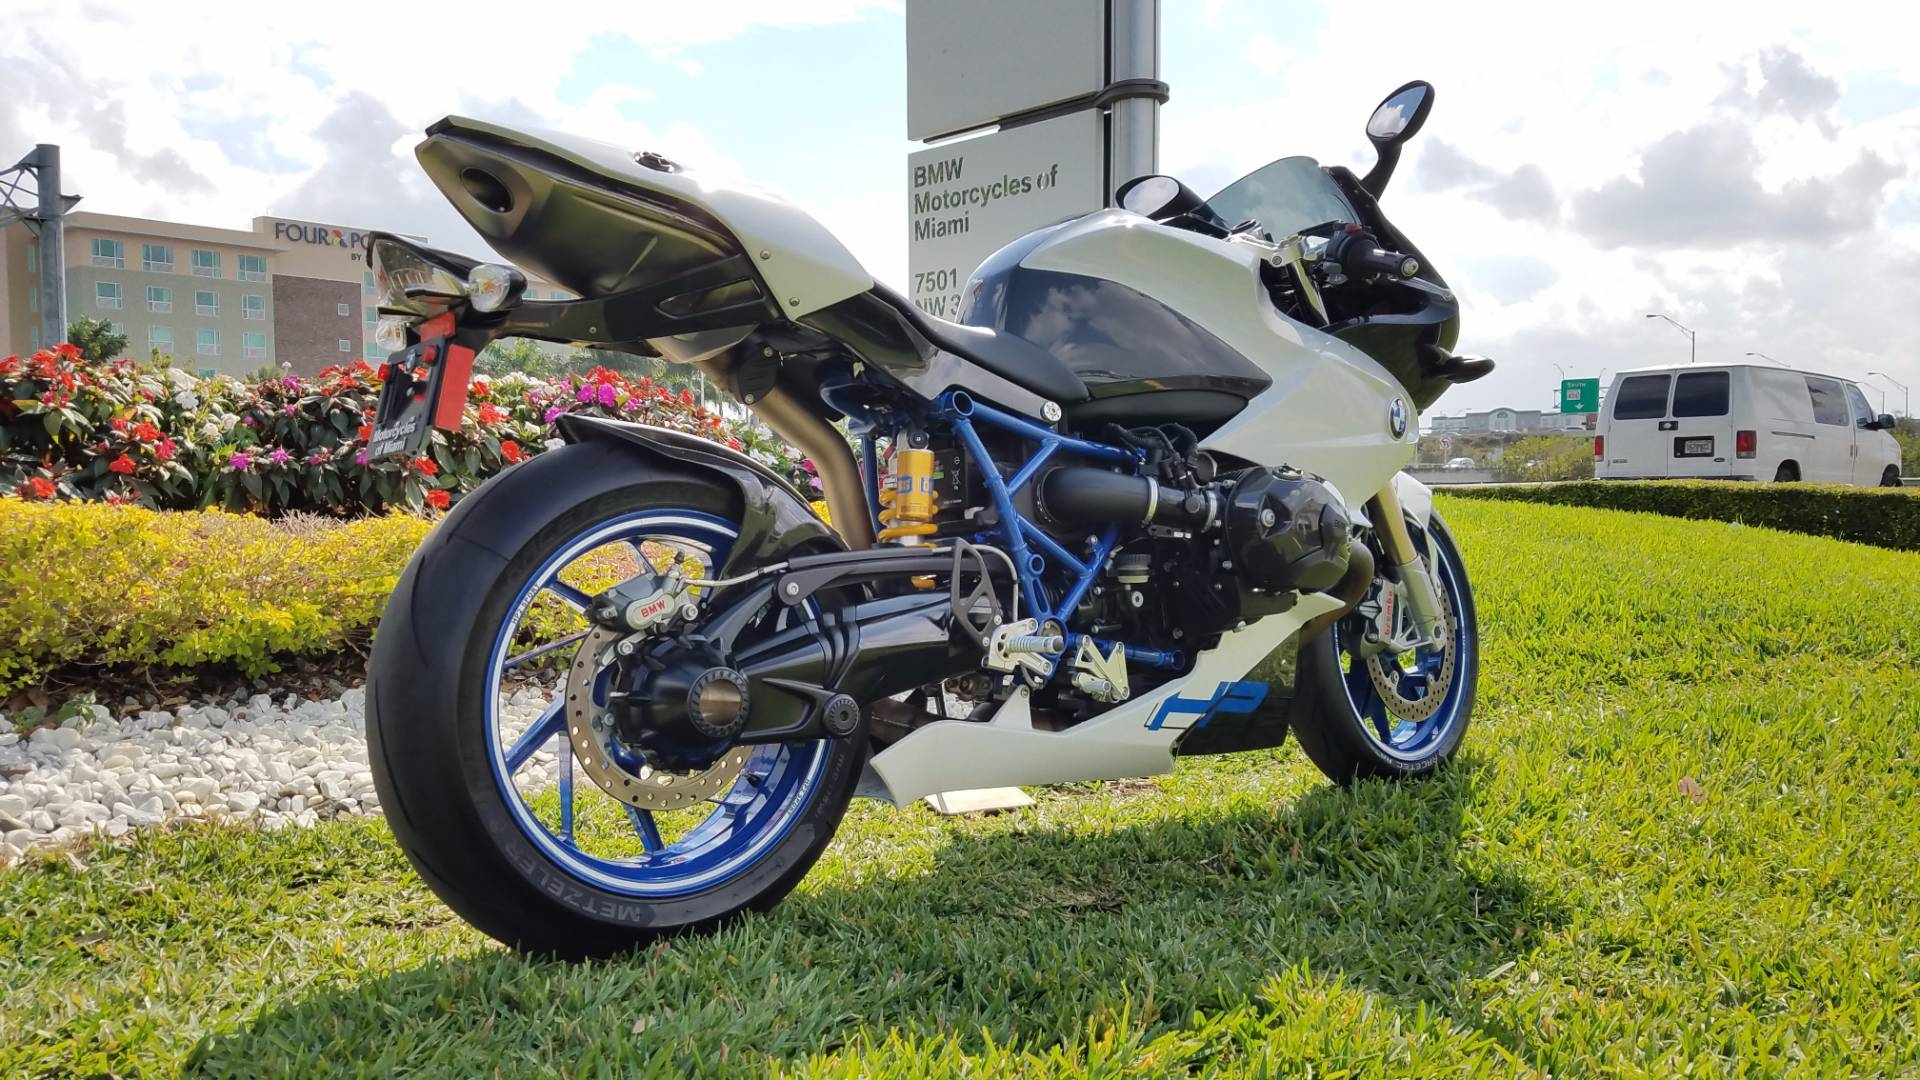 Used 2009 BMW R 1200 HP2 Sport For Sale, HP2 Sport For Sale, BMW Motorcycle HP2 Sport, used BMW Motorcycle for sale